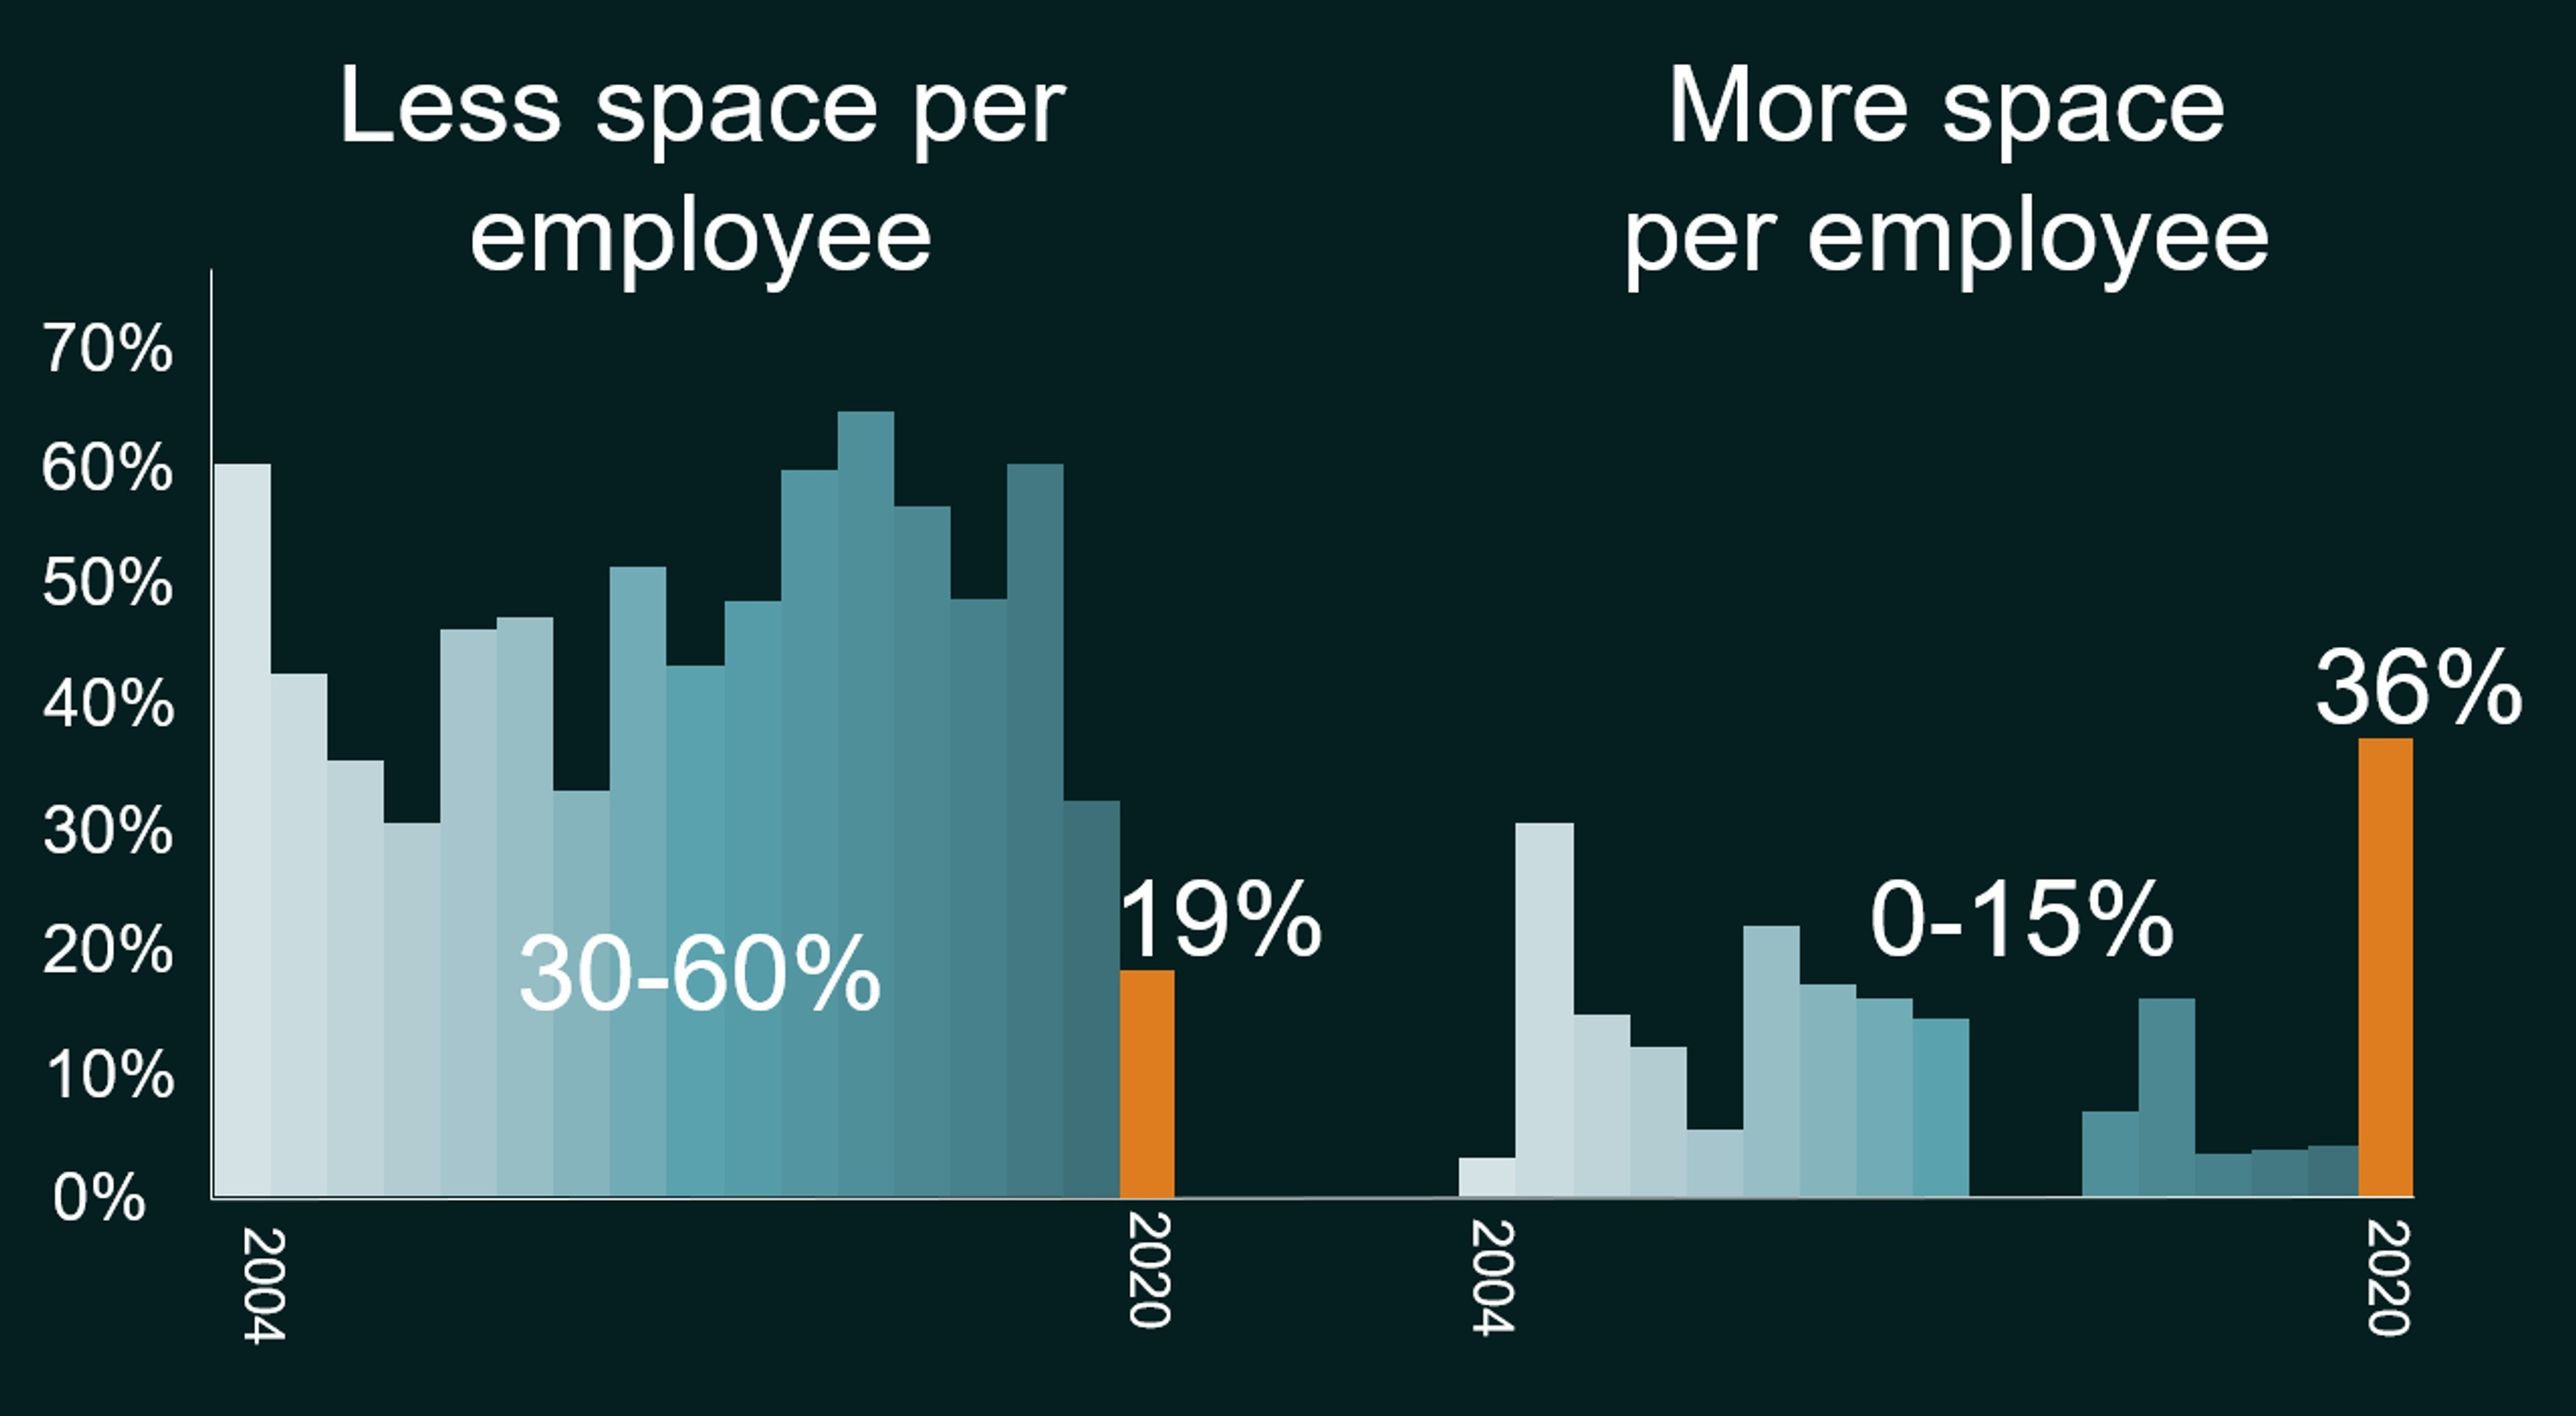 Responses for space relocation survey, latest result Sept. 2020